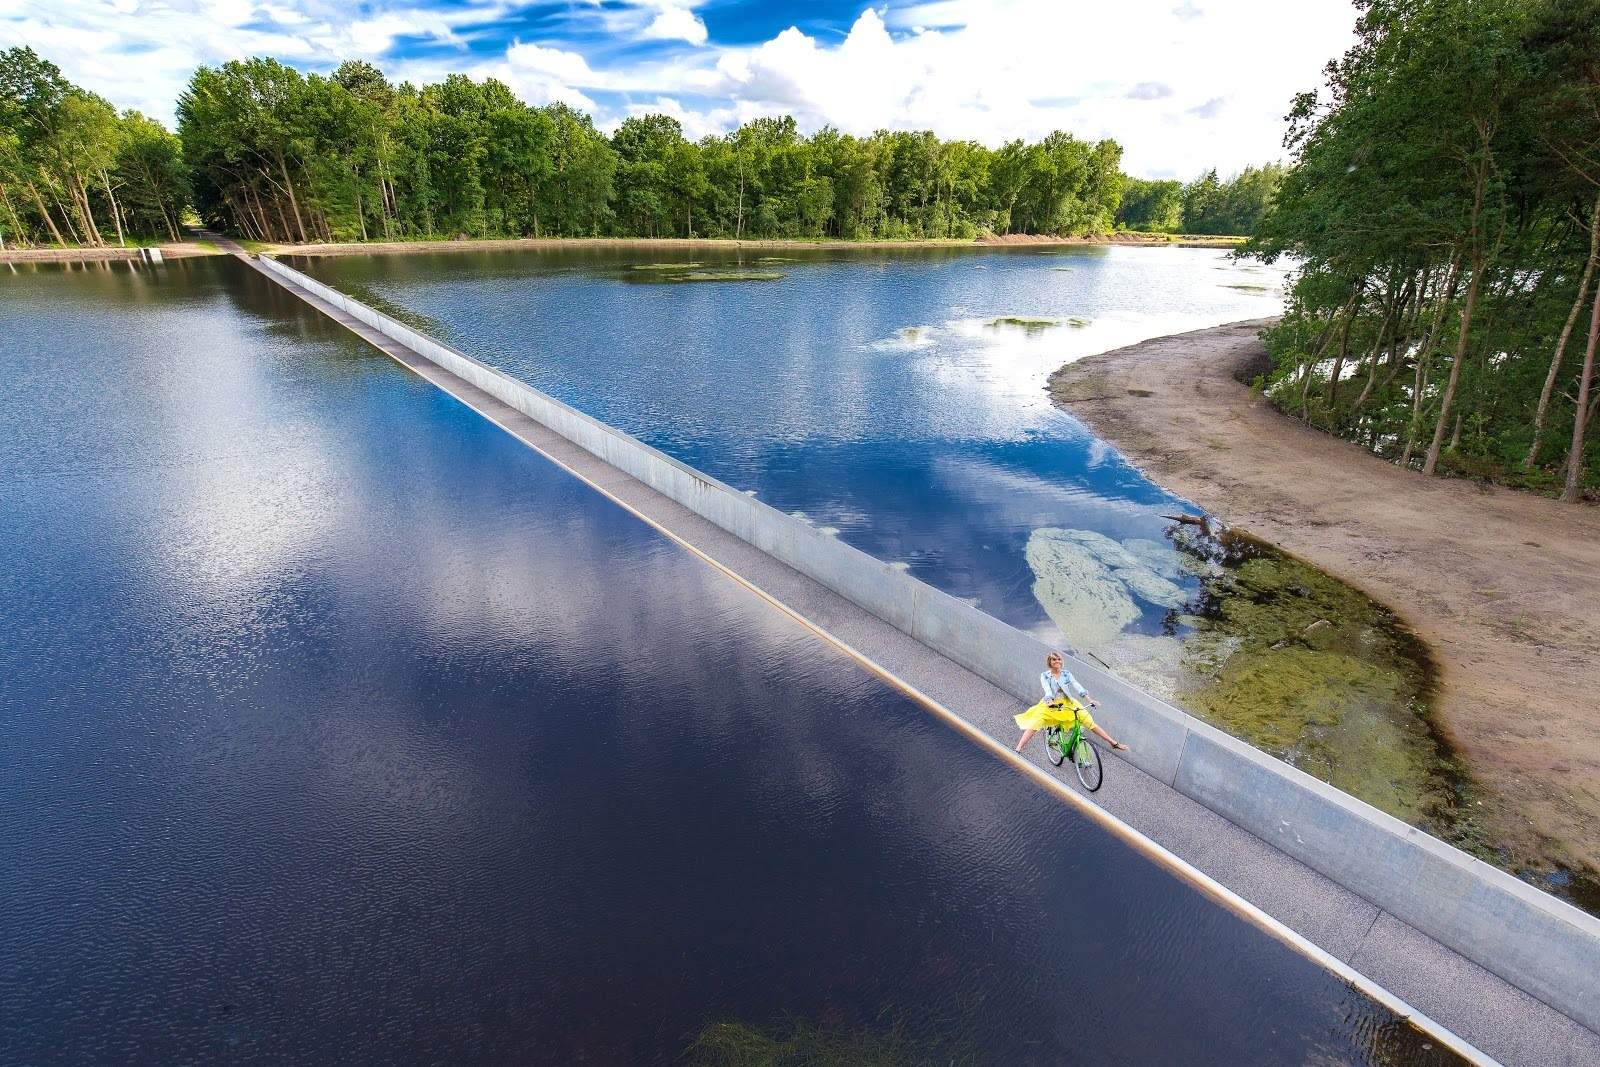 Cycling Through Water, is a three-metre-wide track in Belgium with water at eye-level on both sides